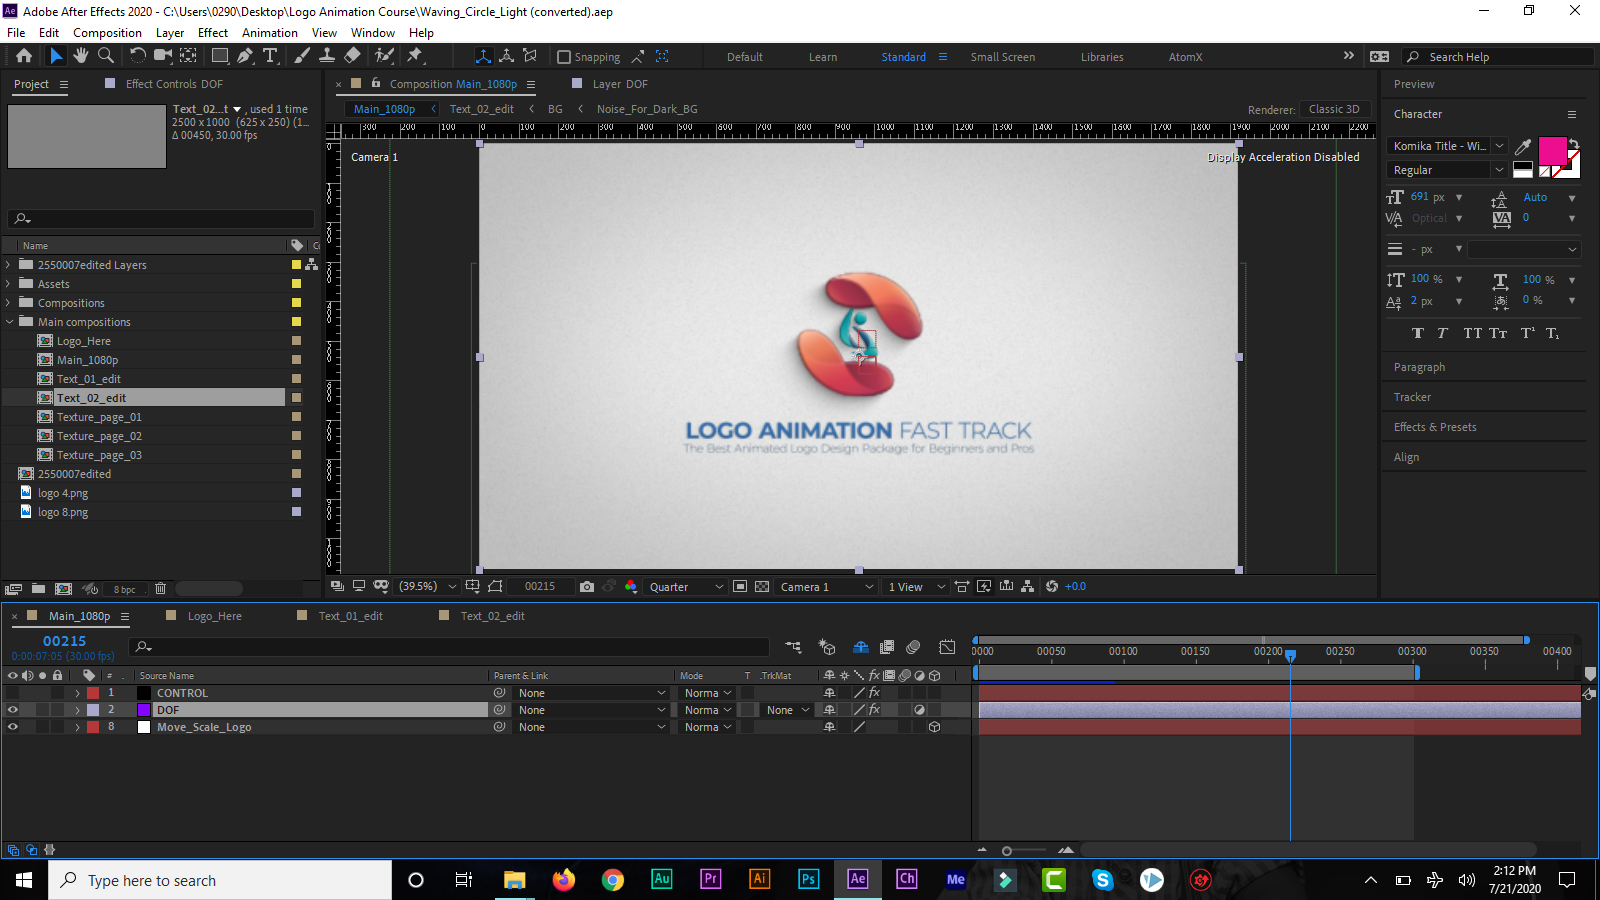 logo animation in after effect